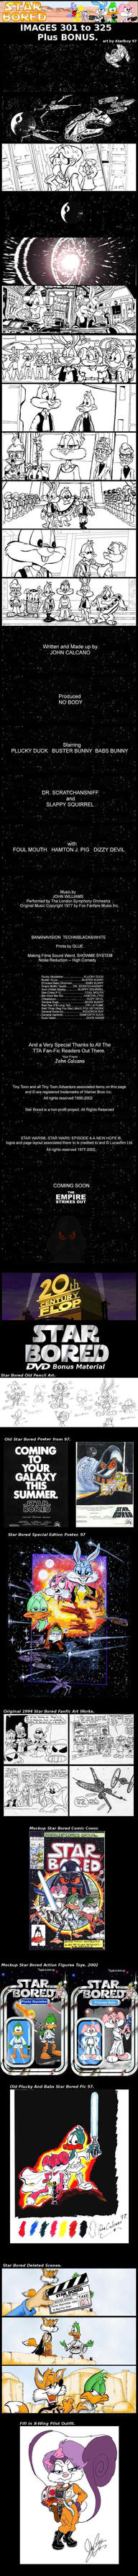 STAR BORED Images 301 to 325. by Atariboy2600